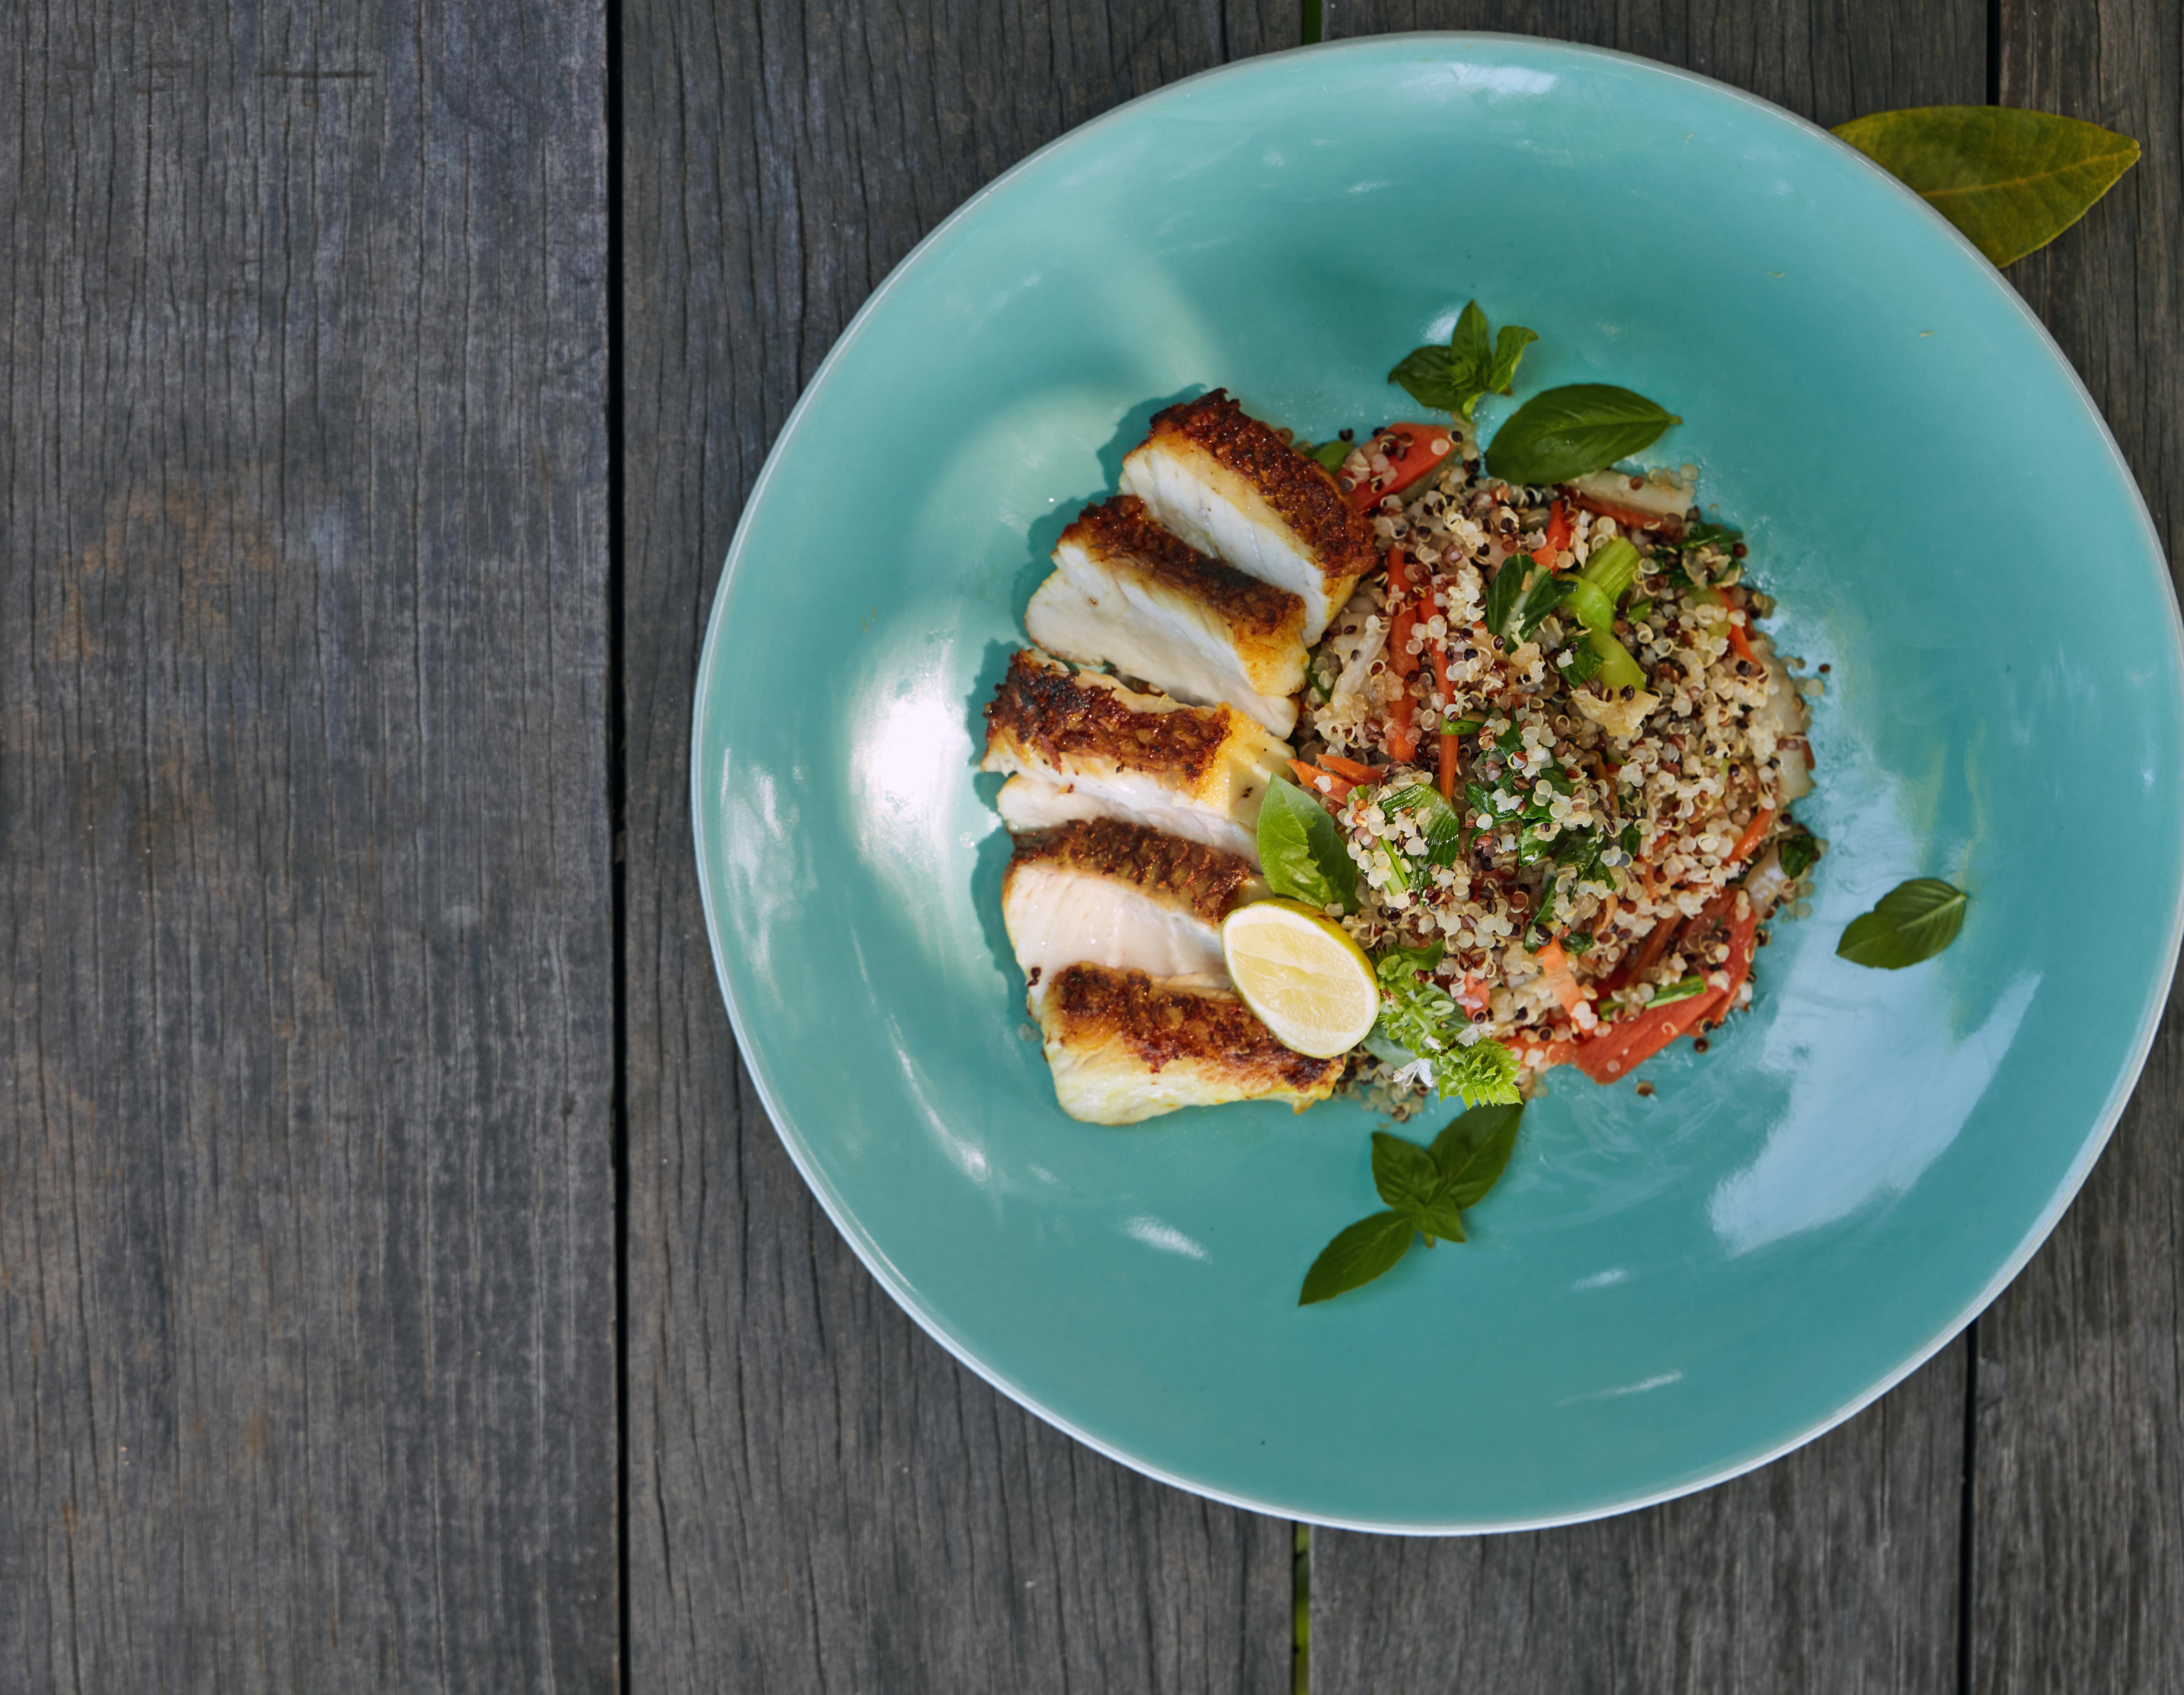 grilled-chicken-quinoa-salad-on-turquoise-plate-wood-background